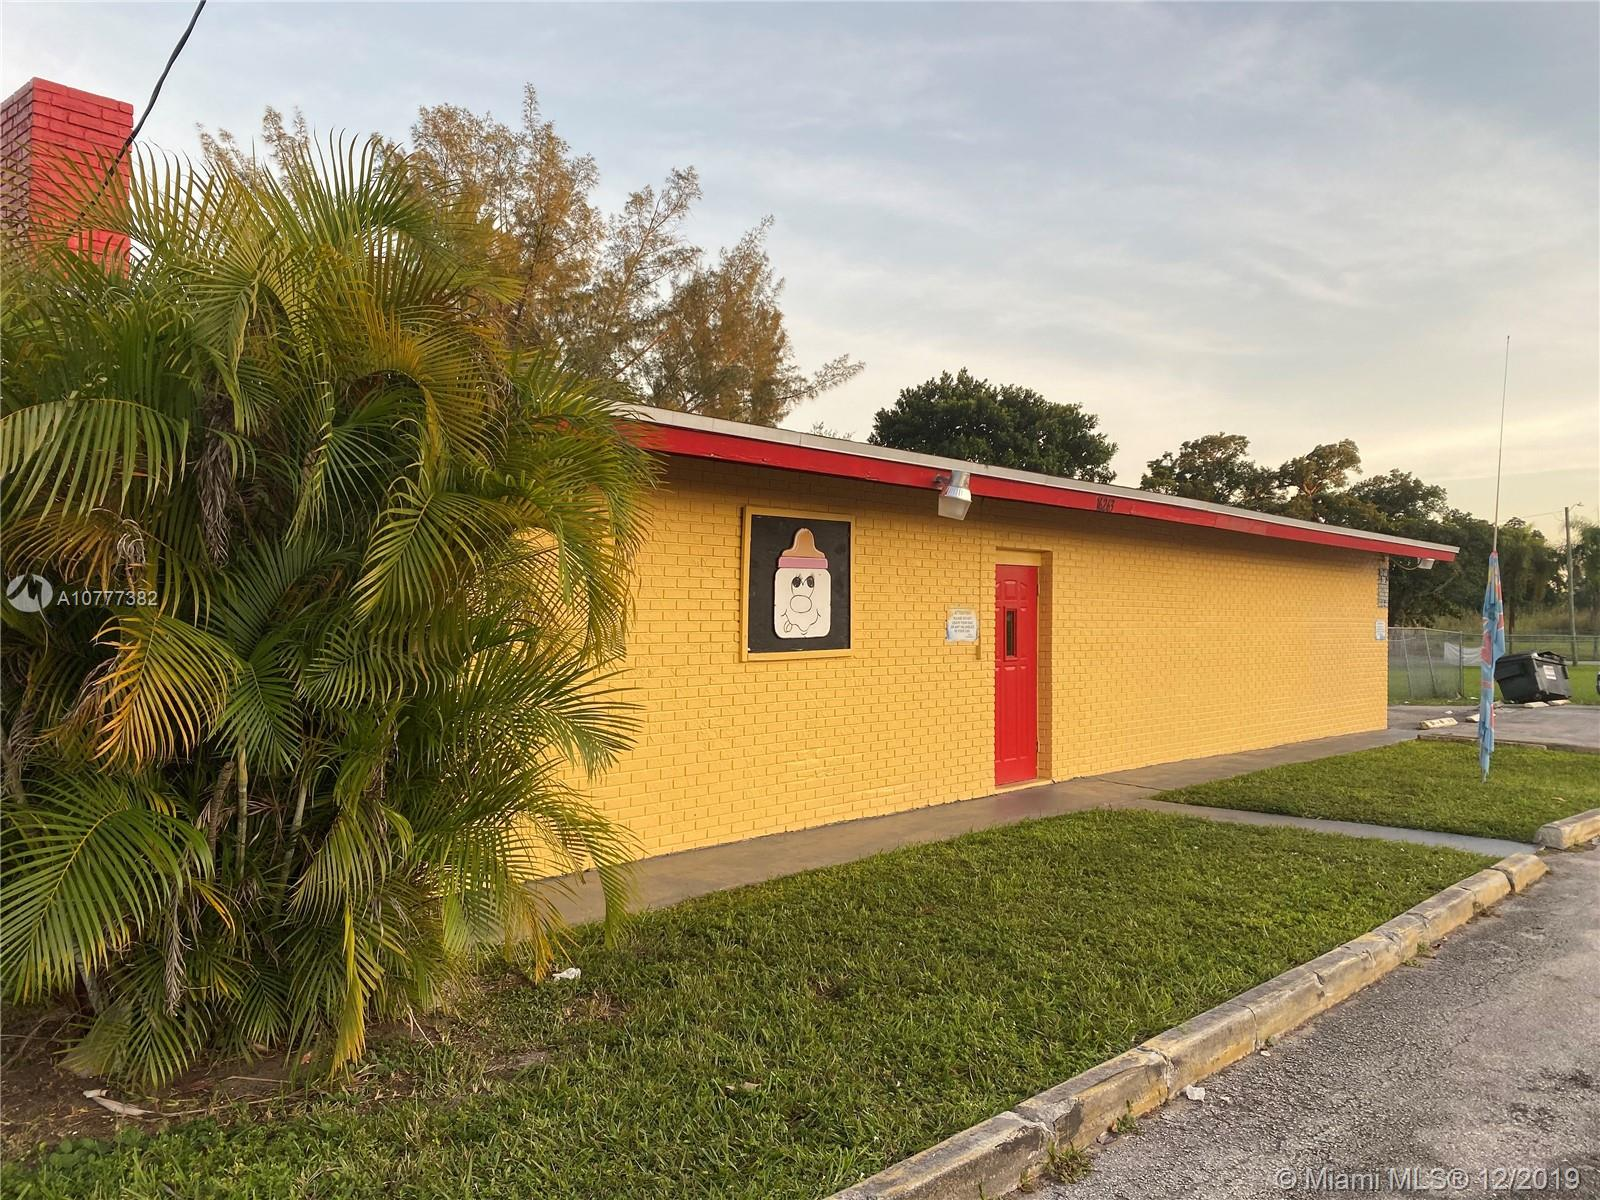 151 NW 162nd St, Miami, FL 33169